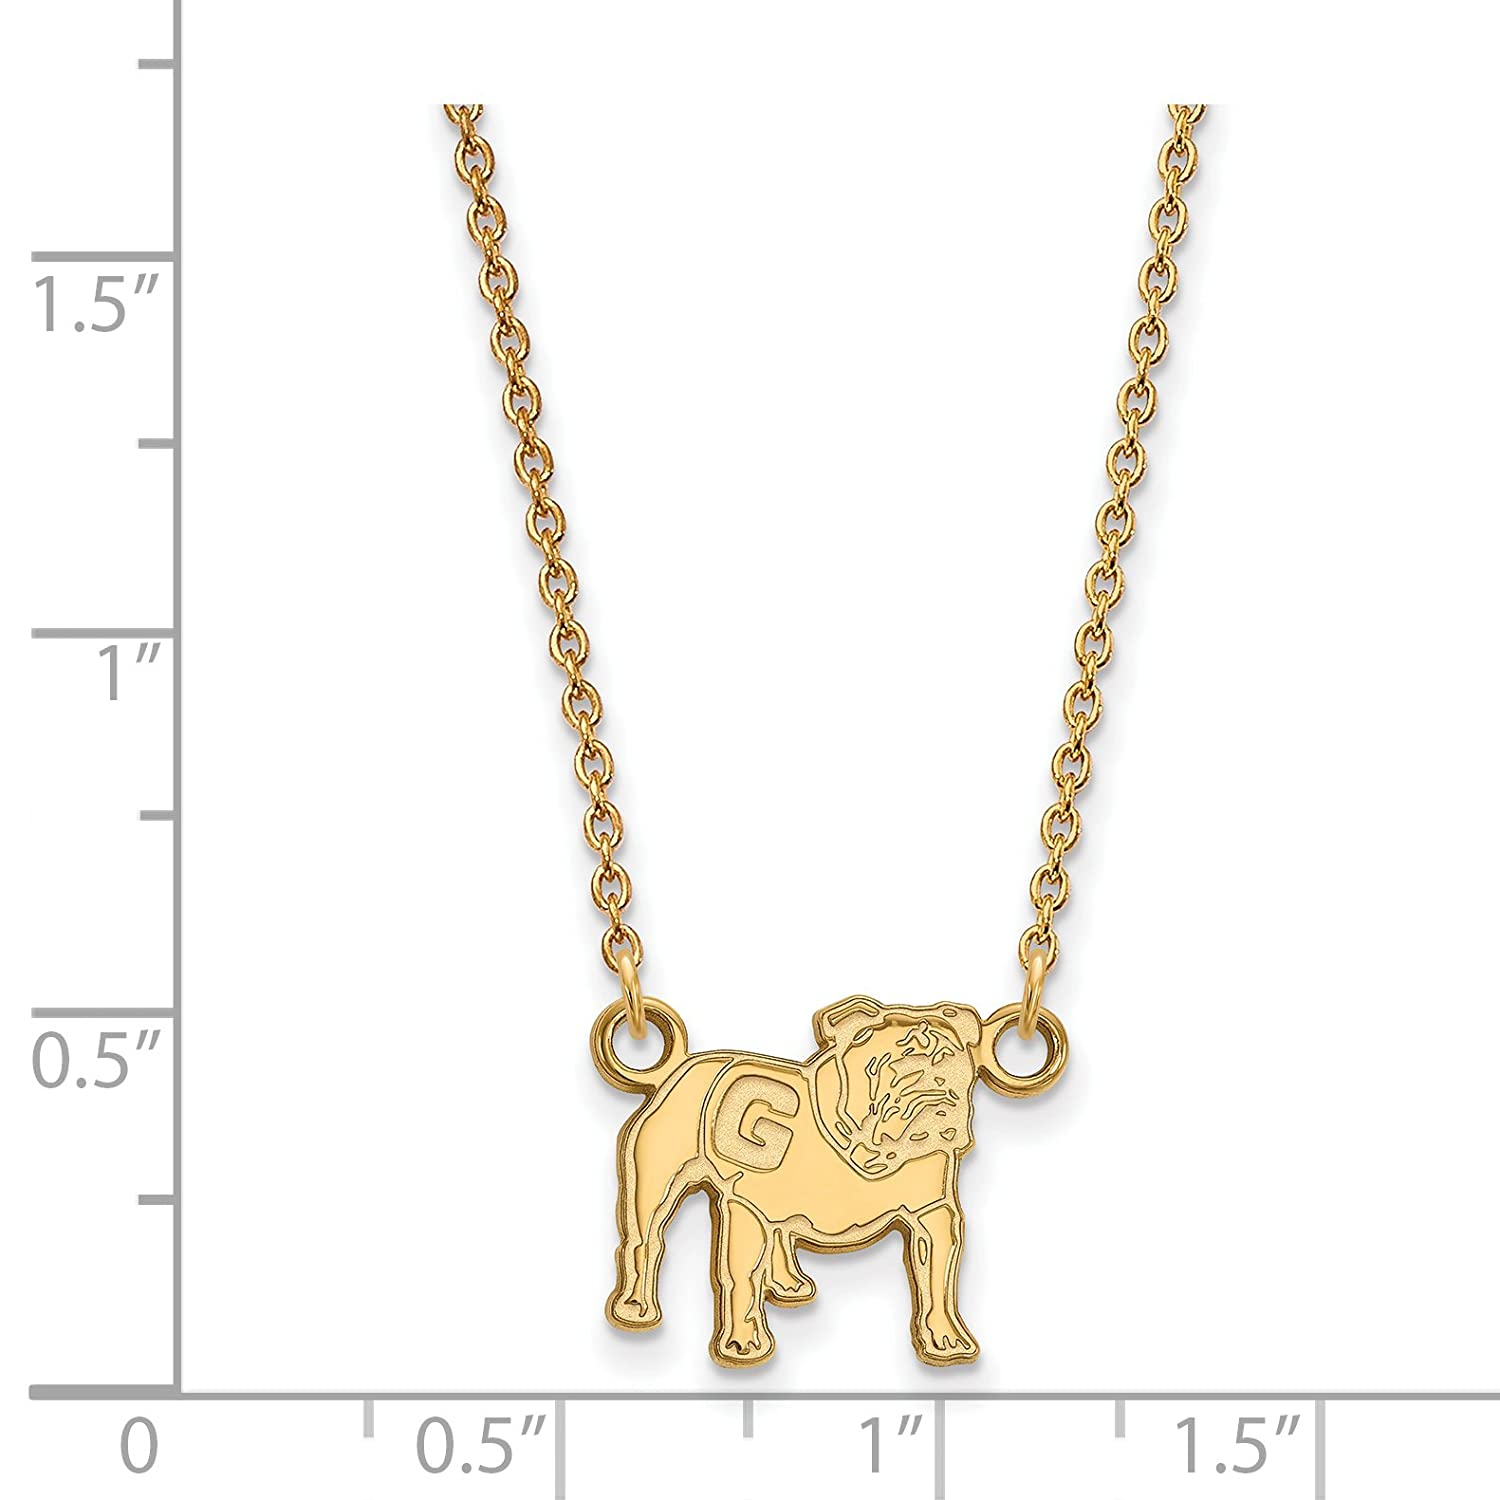 University of Georgia Bulldogs UGA Mascot Pendant Necklace Gold Plated Silver 13x12mm 18 Inches